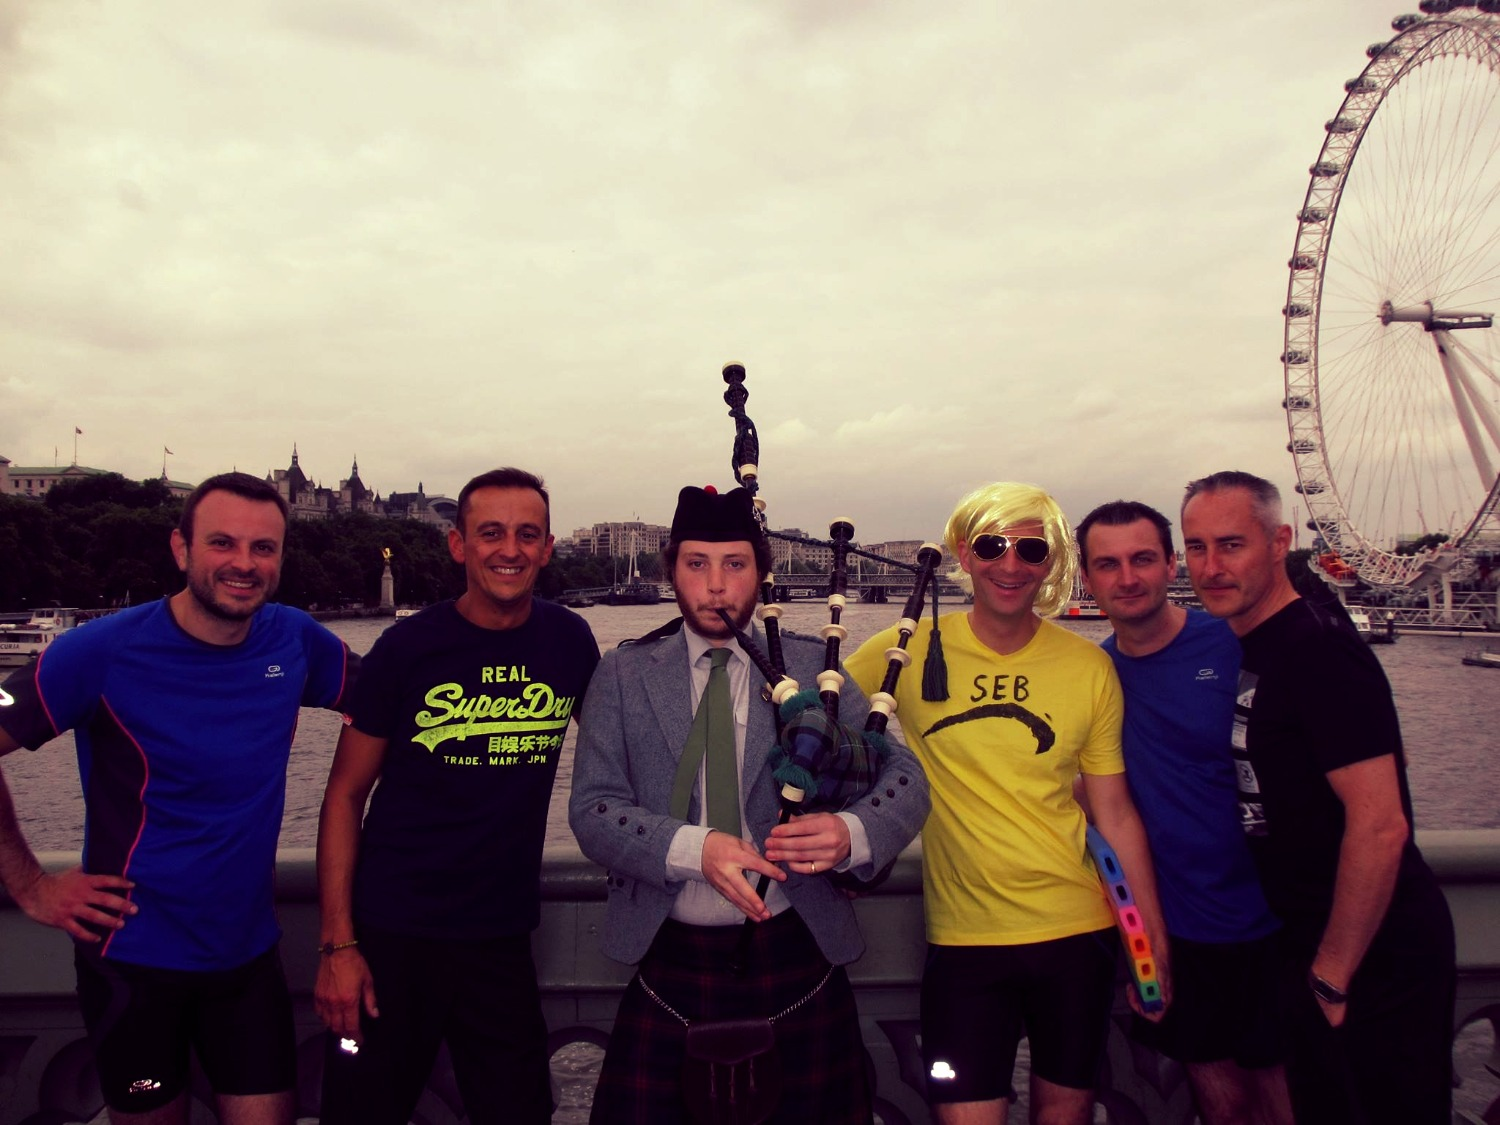 Themed running event in London